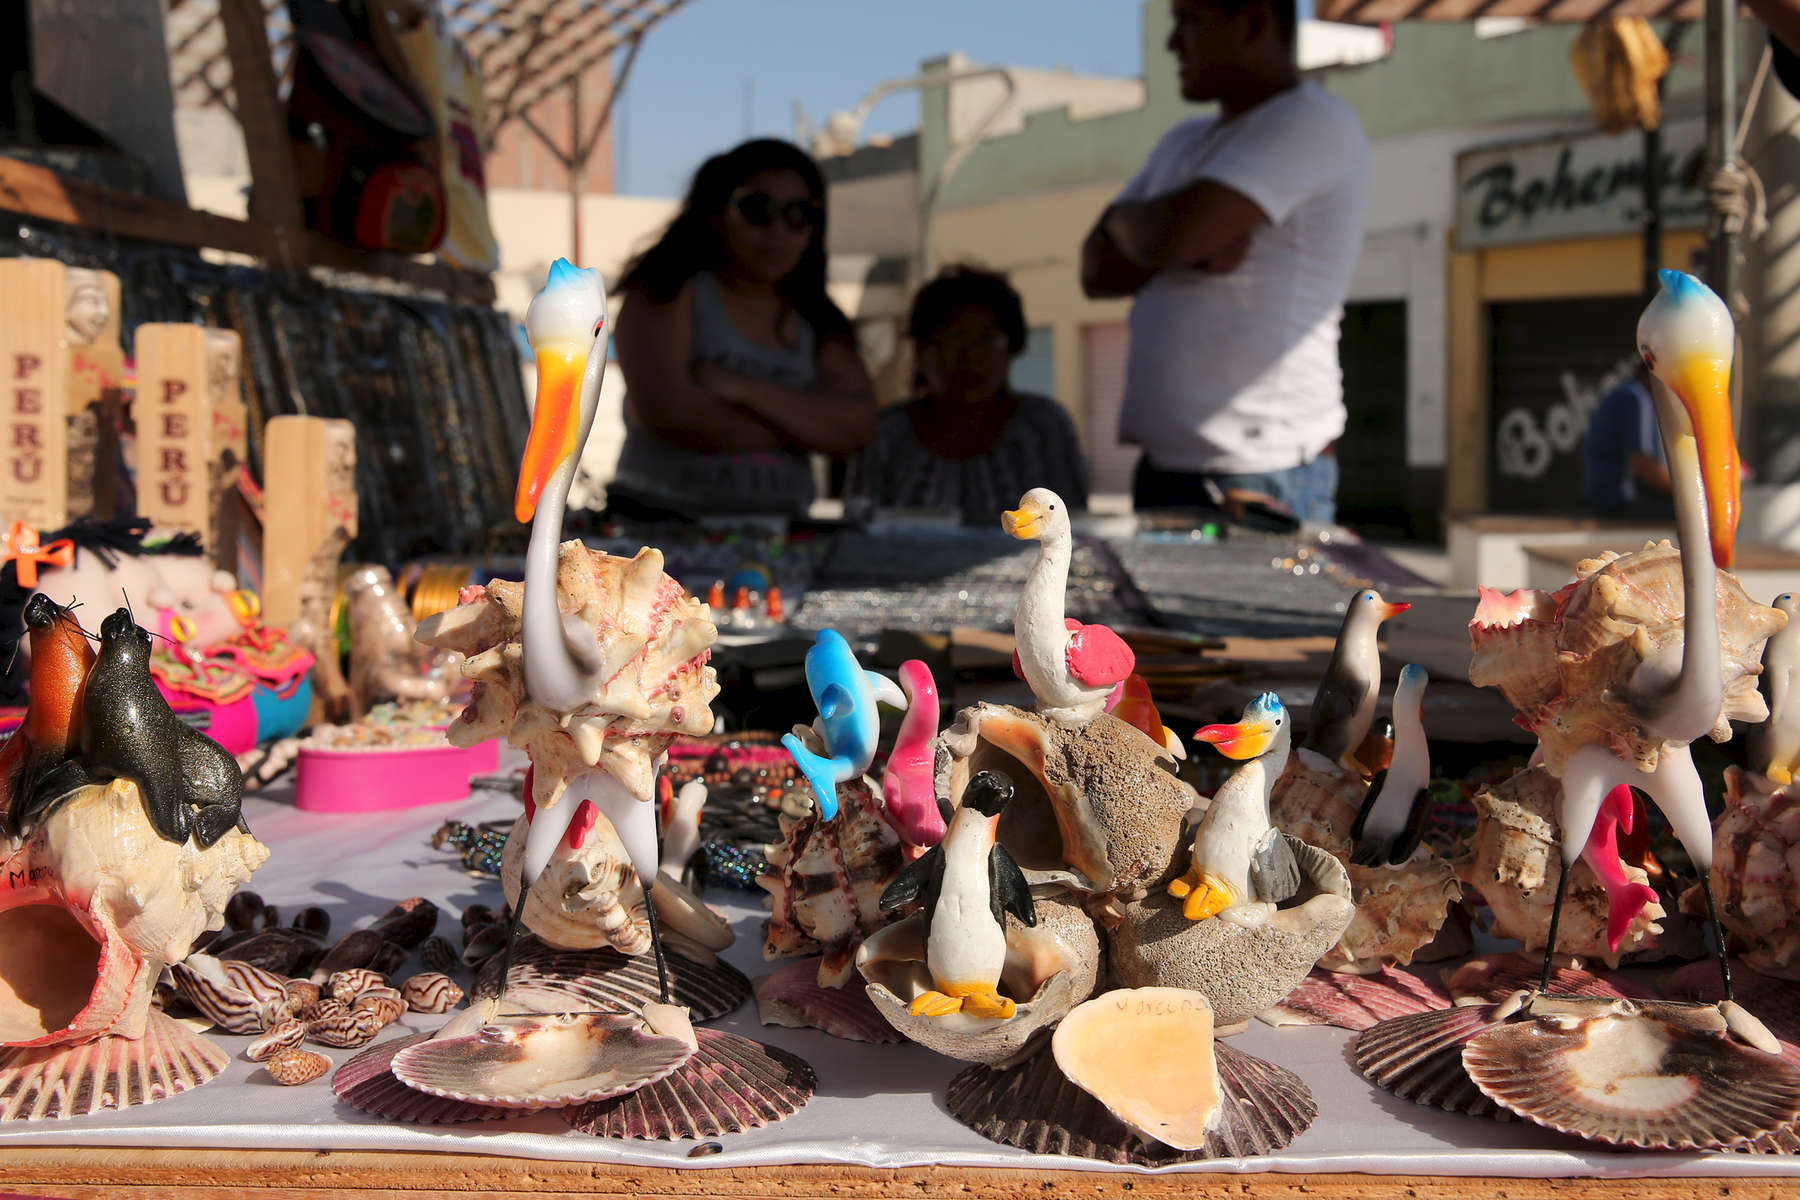 Local merchants sell souvenirs of pelicans, penguins, seals and sea lions at a small stand in San Juan de Marcona, Peru. Primiarly a mining area, Marcona has seen a recent influx of tourism, driven in large part by the Punta San Juan reserve and its wildlife.